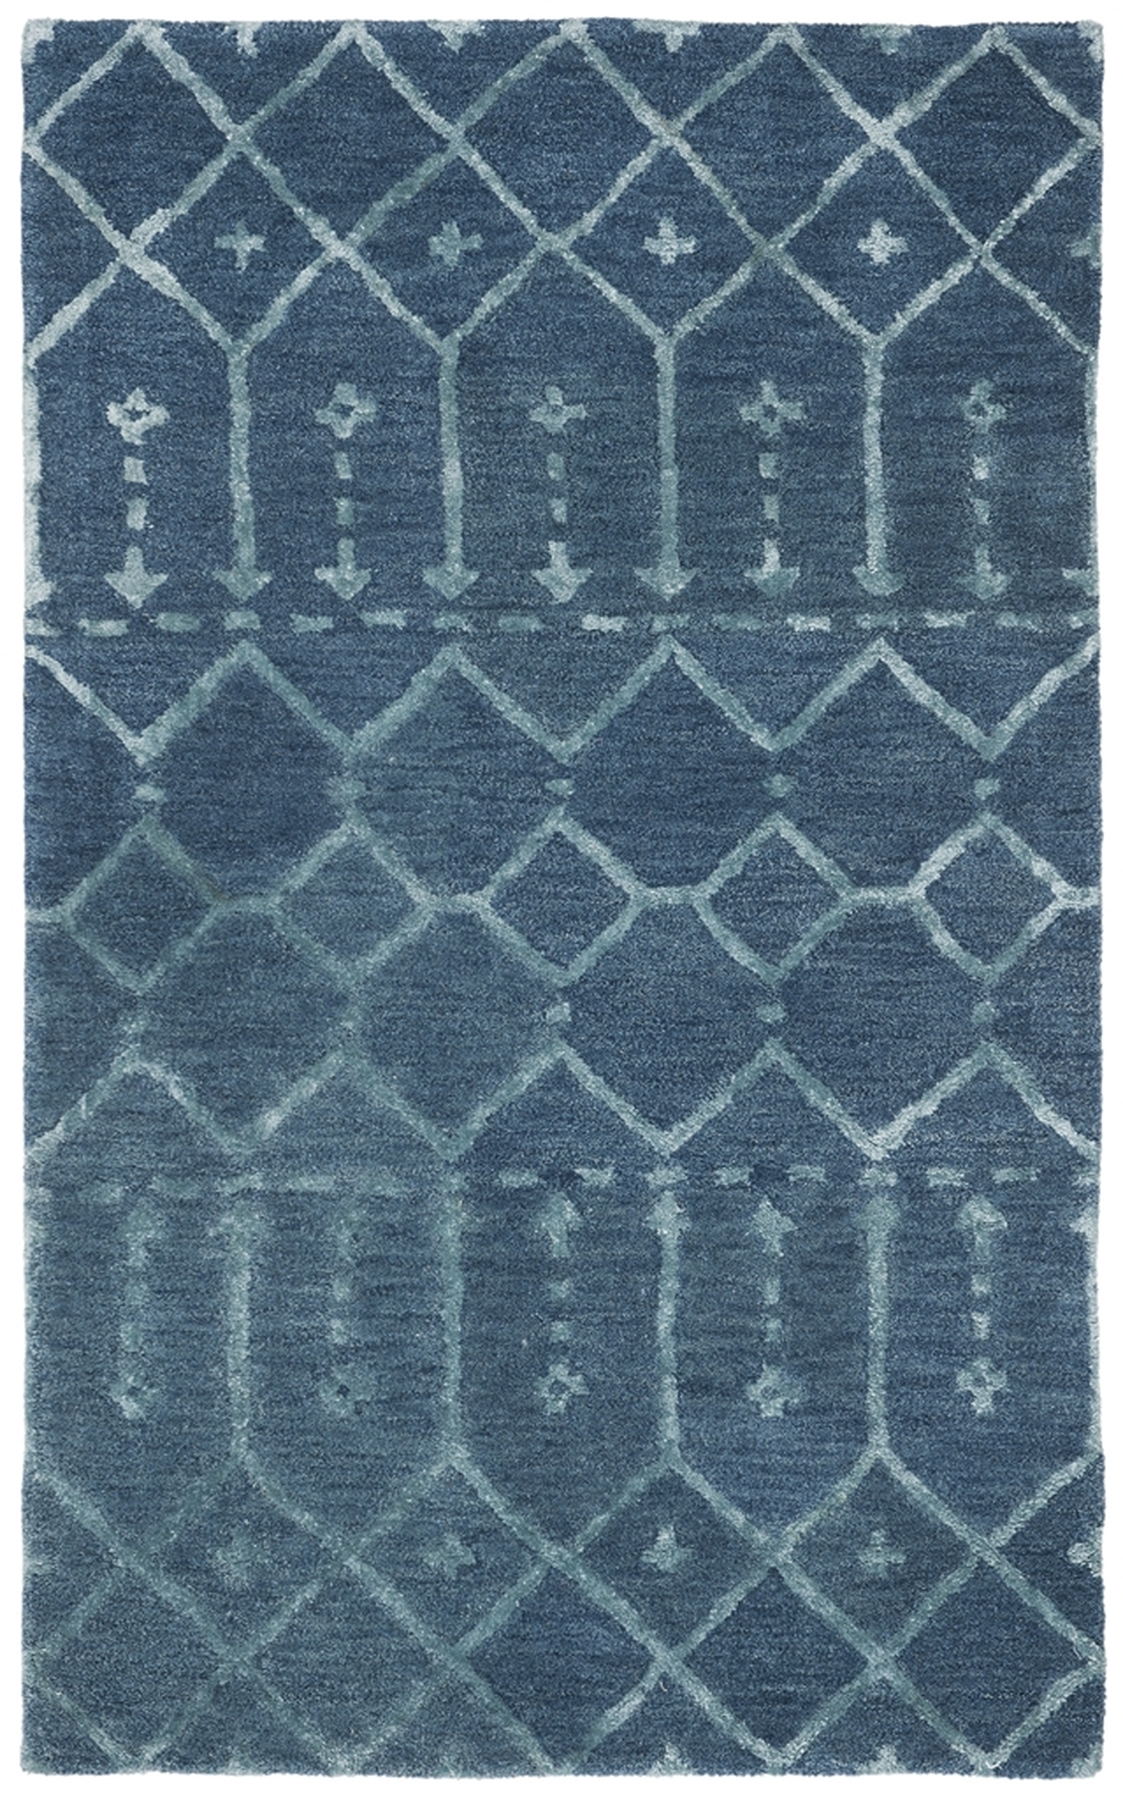 Rug Him903n Himalaya Area Rugs By Safavieh